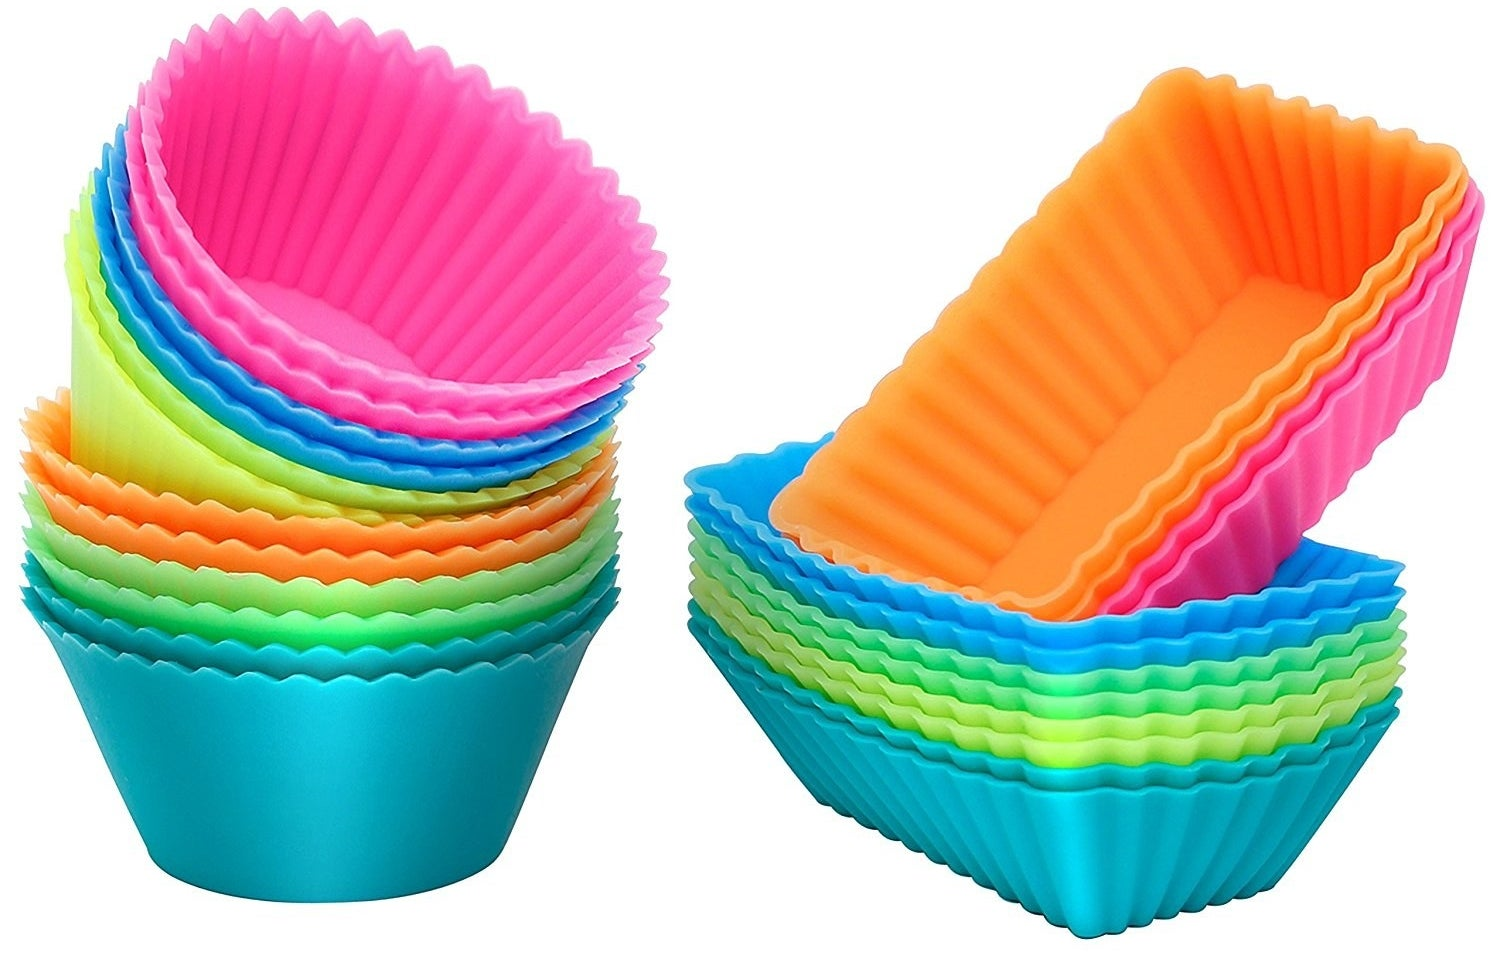 A 24-pack of reusable silicone cupcake liners that'll assist you in baking your fave delish goods... and then in baking them again, and again, and again, and again...